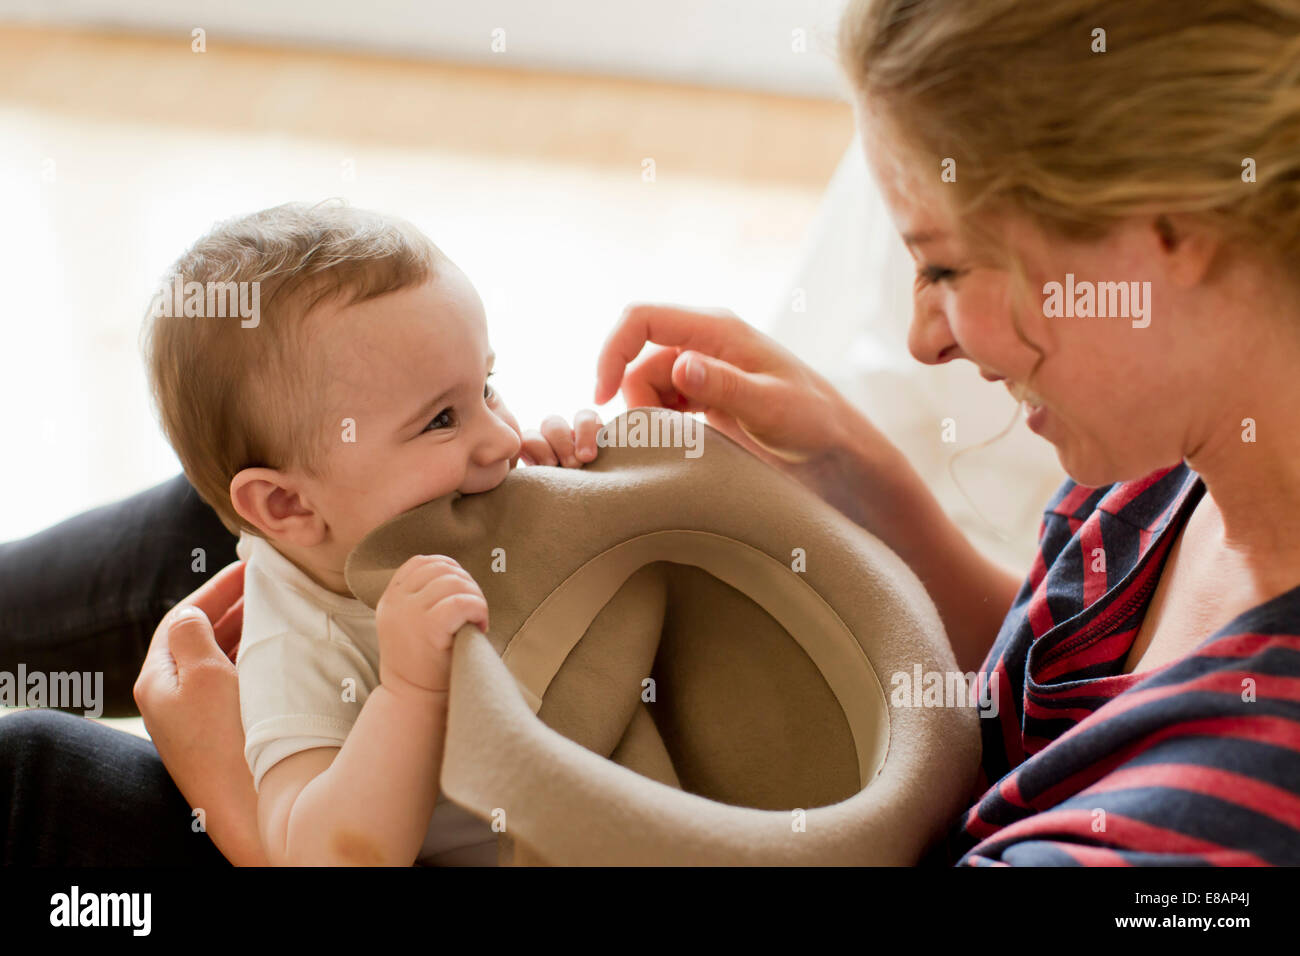 Mother playing with baby boy - Stock Image